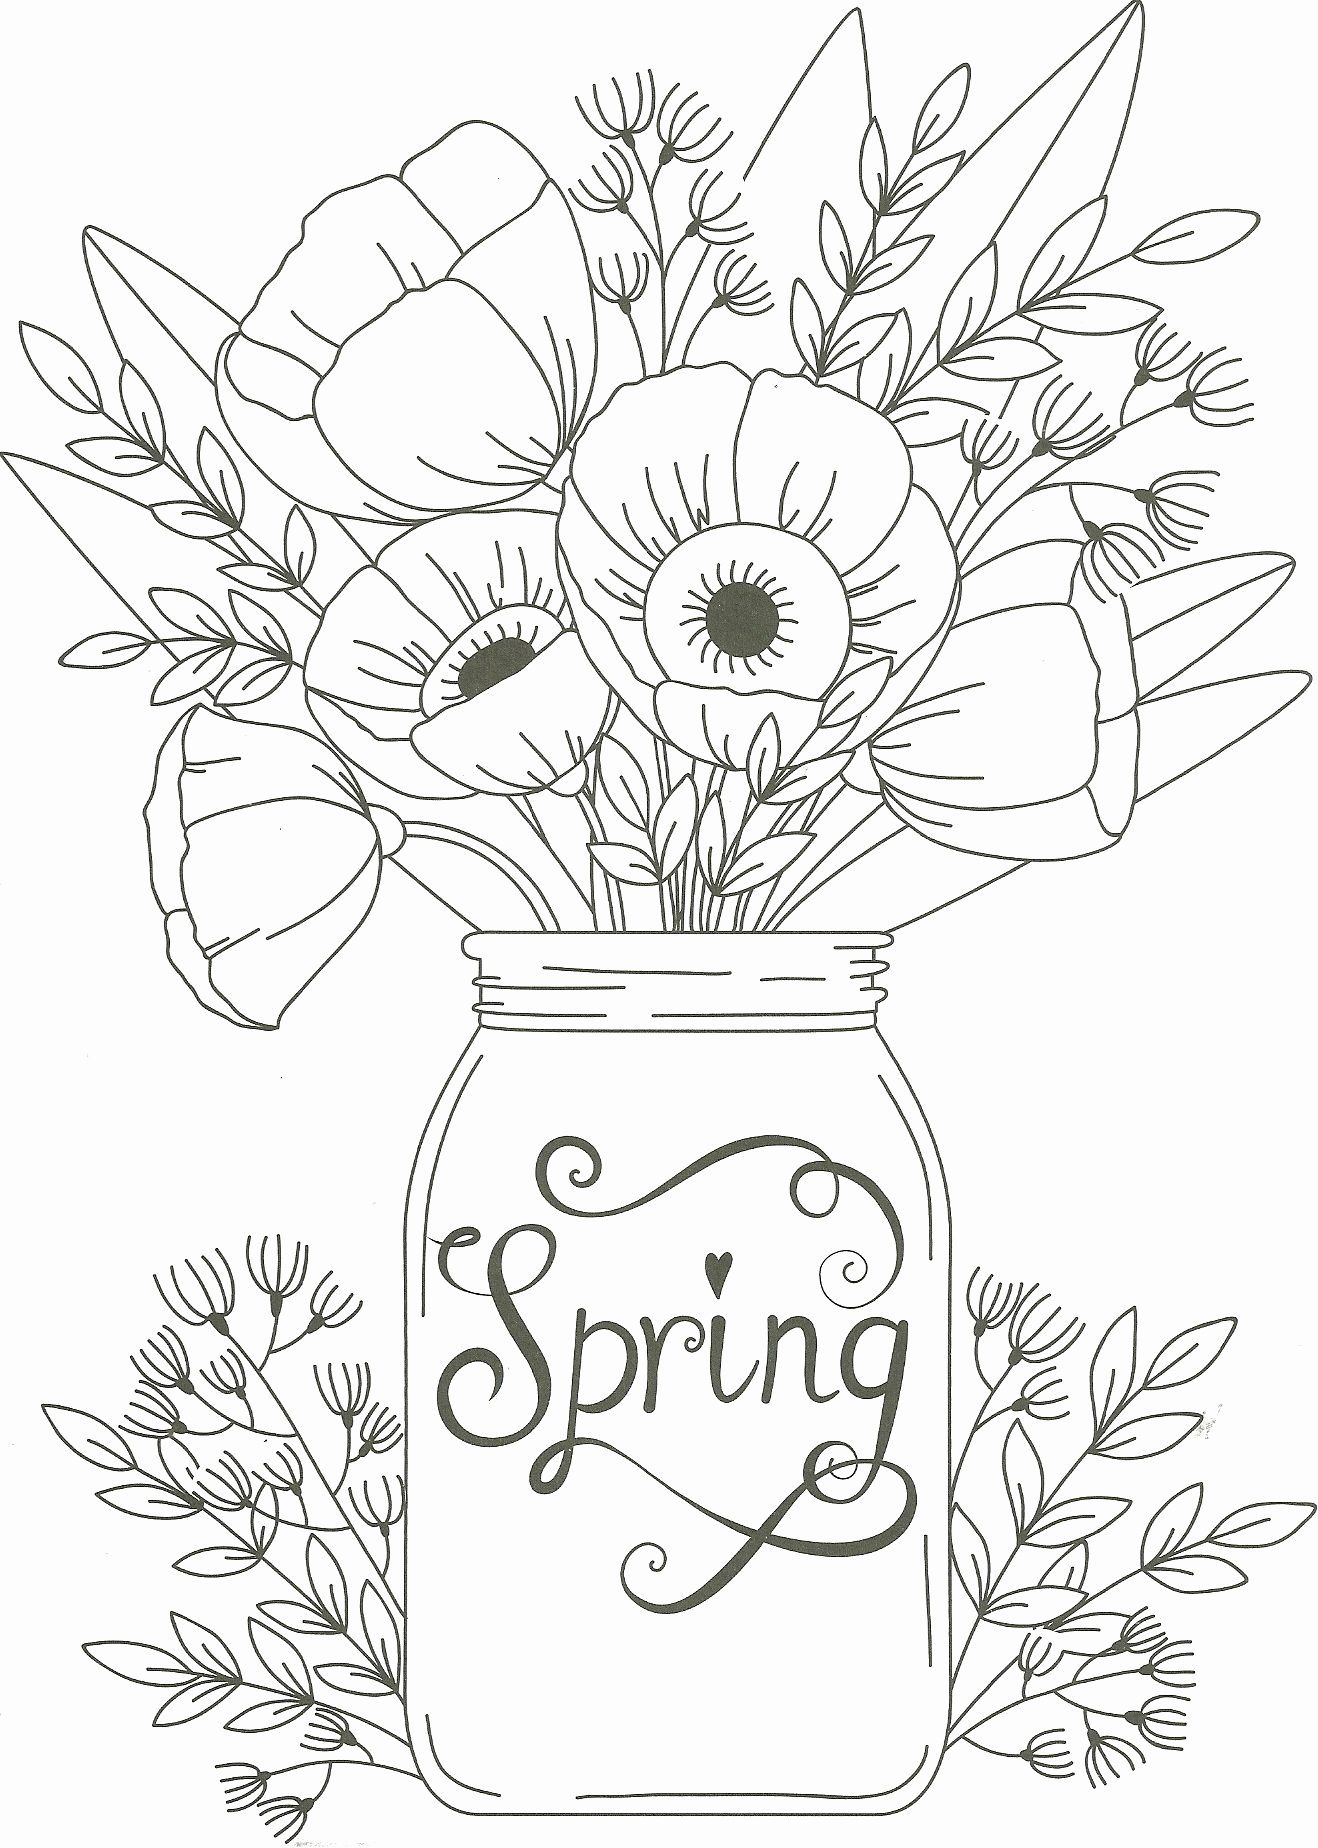 Spring Coloring Sheets for Adults Best Of Spring Mason Jar